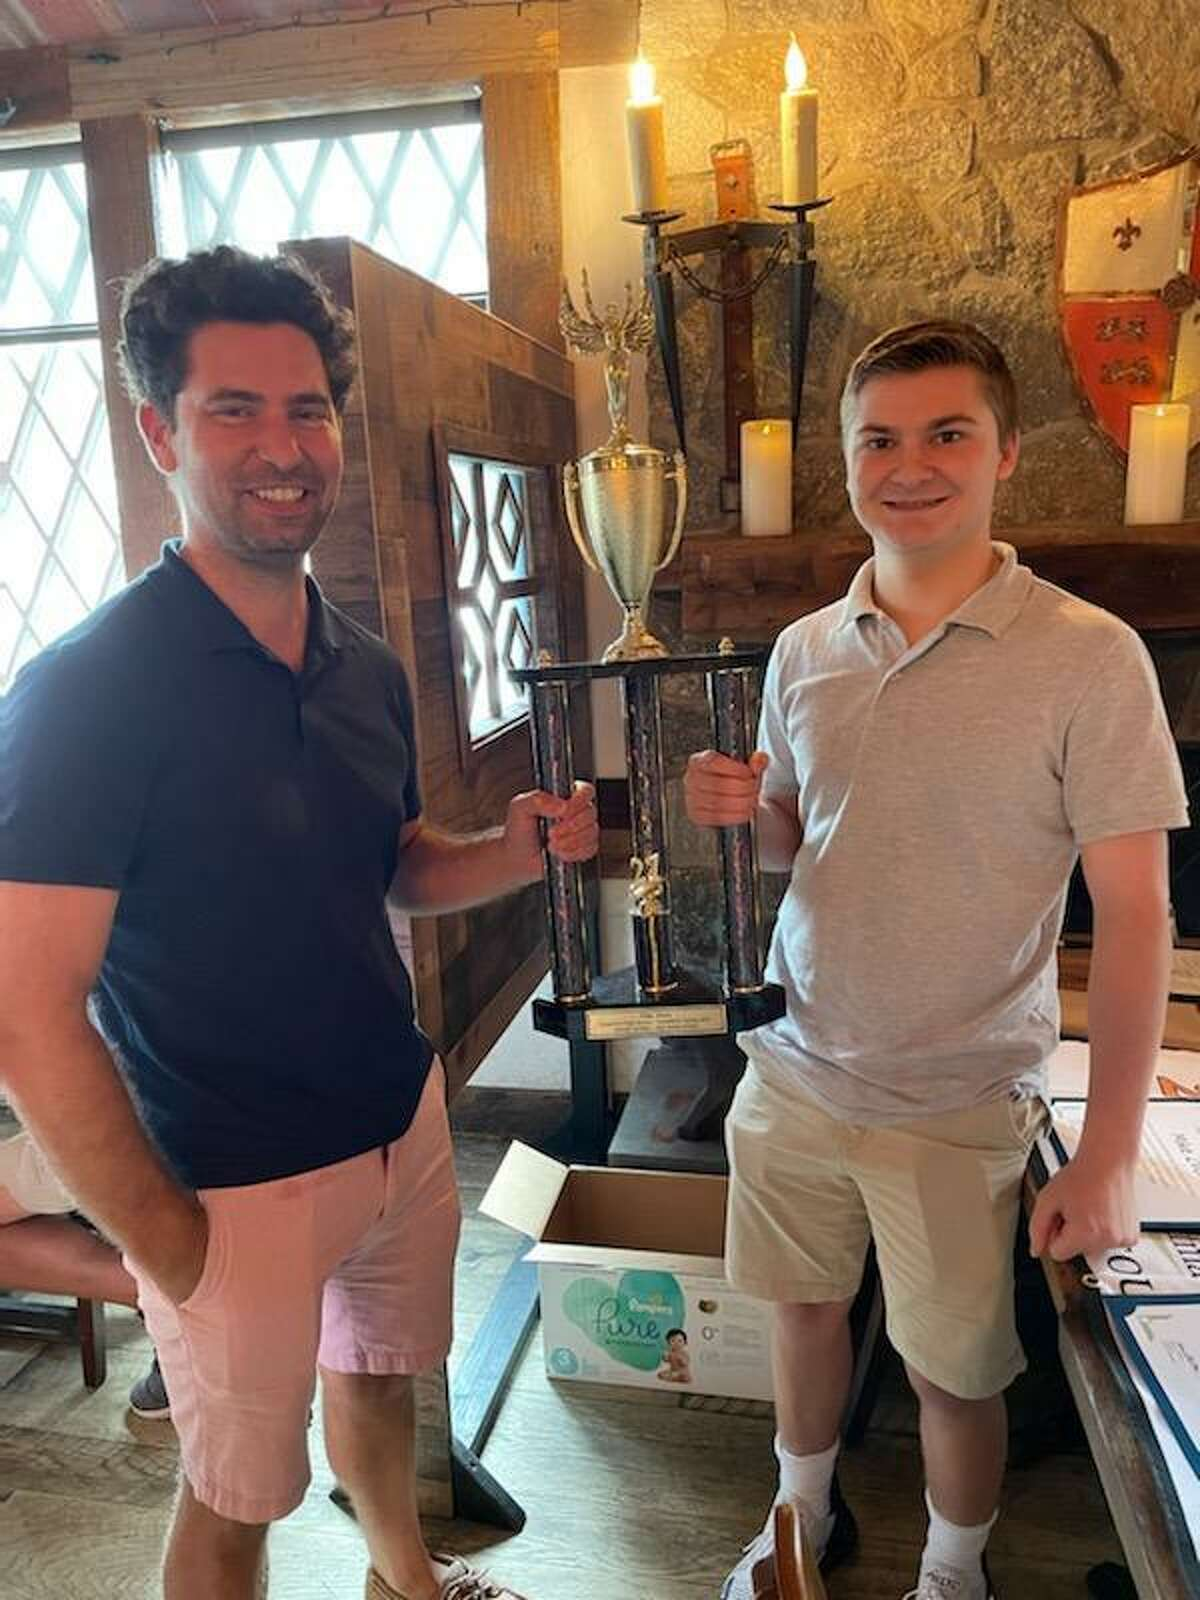 Ridgefield High School business student and investment club president Mike Zvon recently placed first in the U.S. in a national essay competition called InvestWrite.